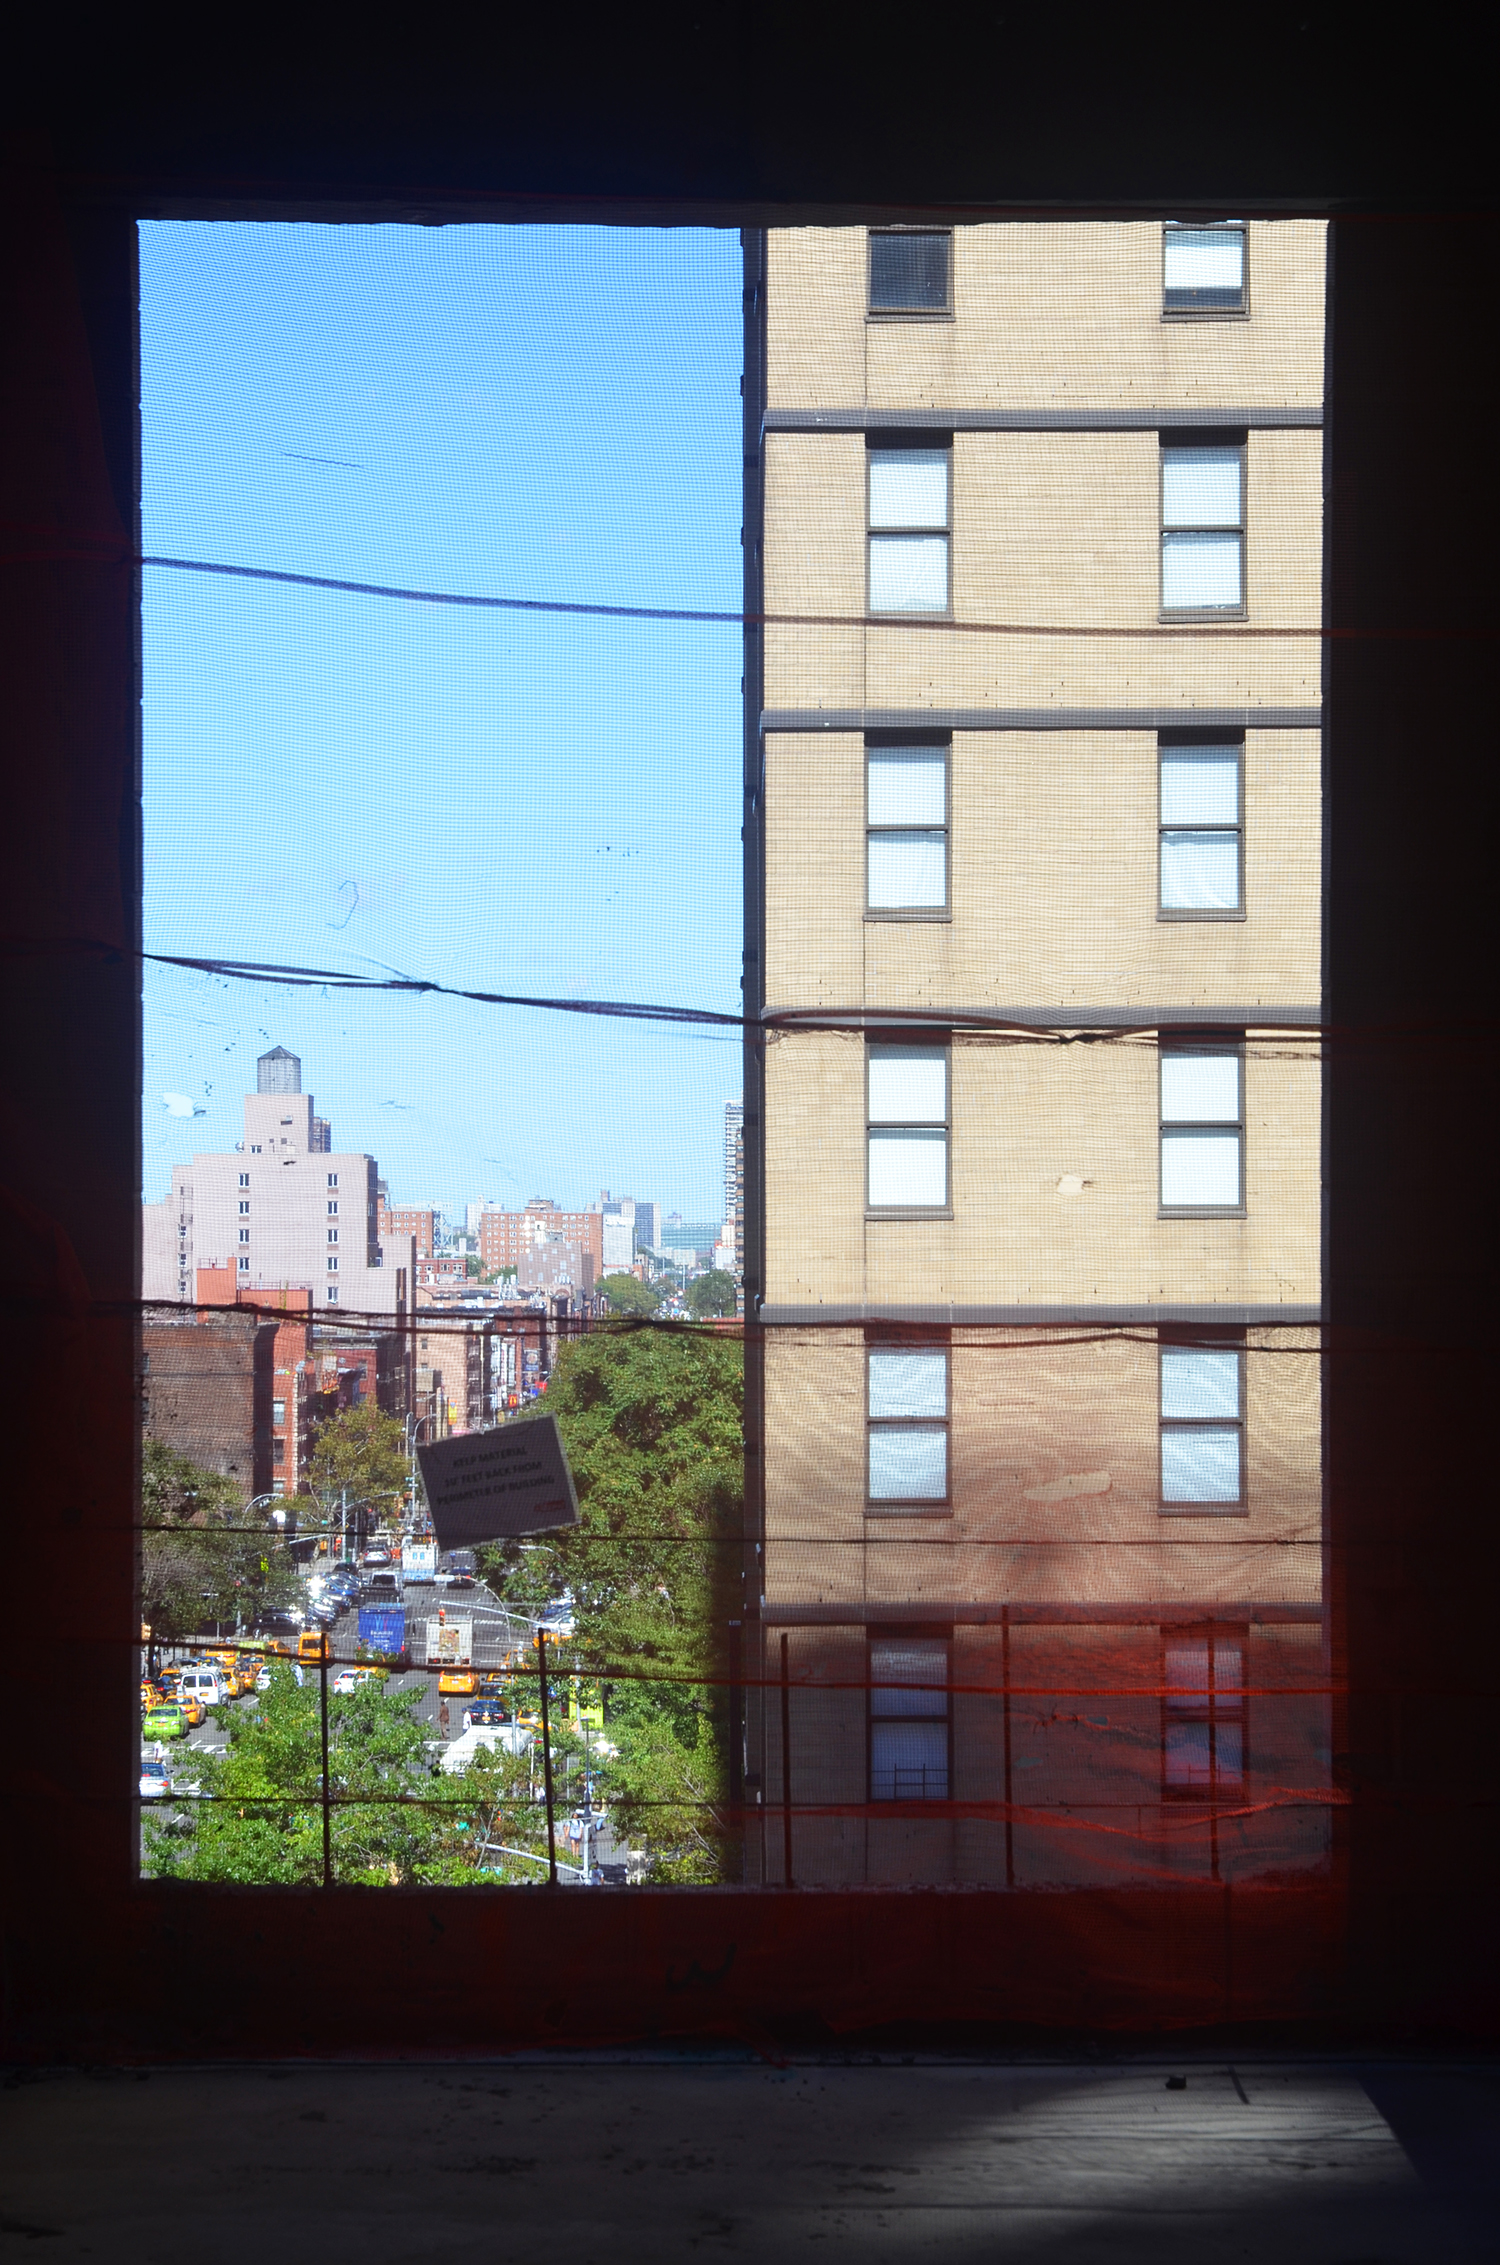 A large window opening on the eighth floor of The Kent, 200 East 95th Street